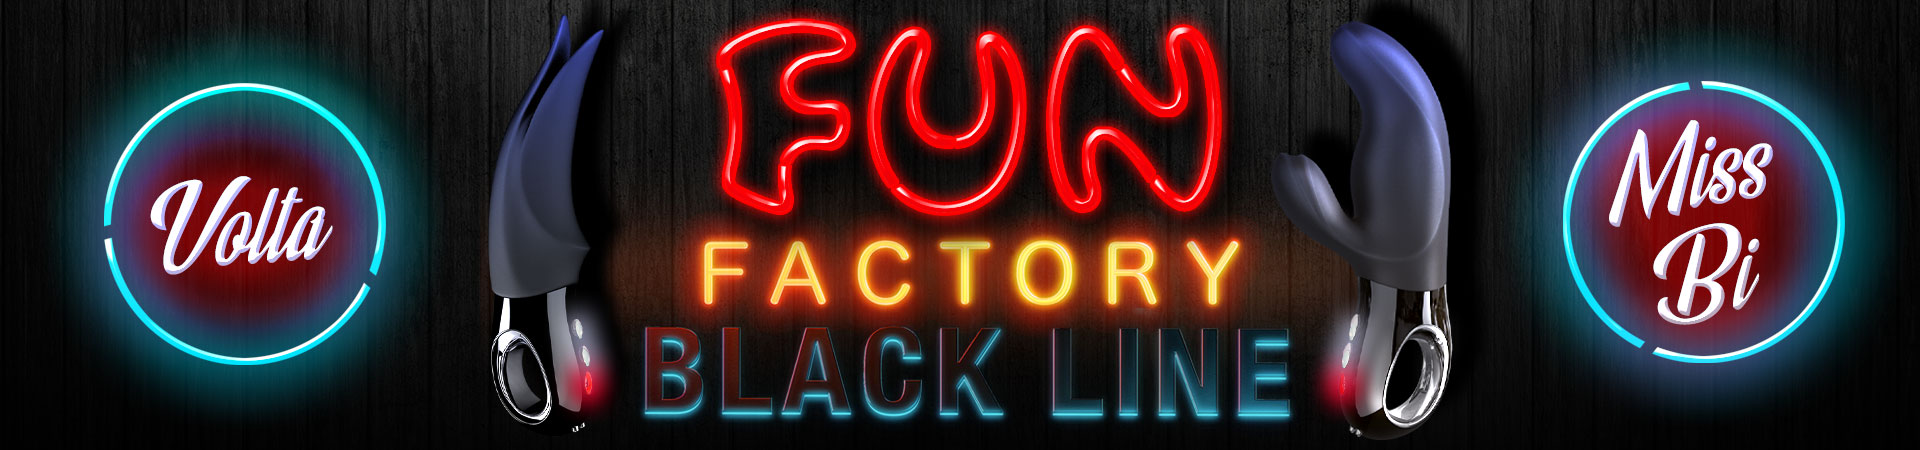 New From The Fun Factory Black Line, Miss Bi & Volta!